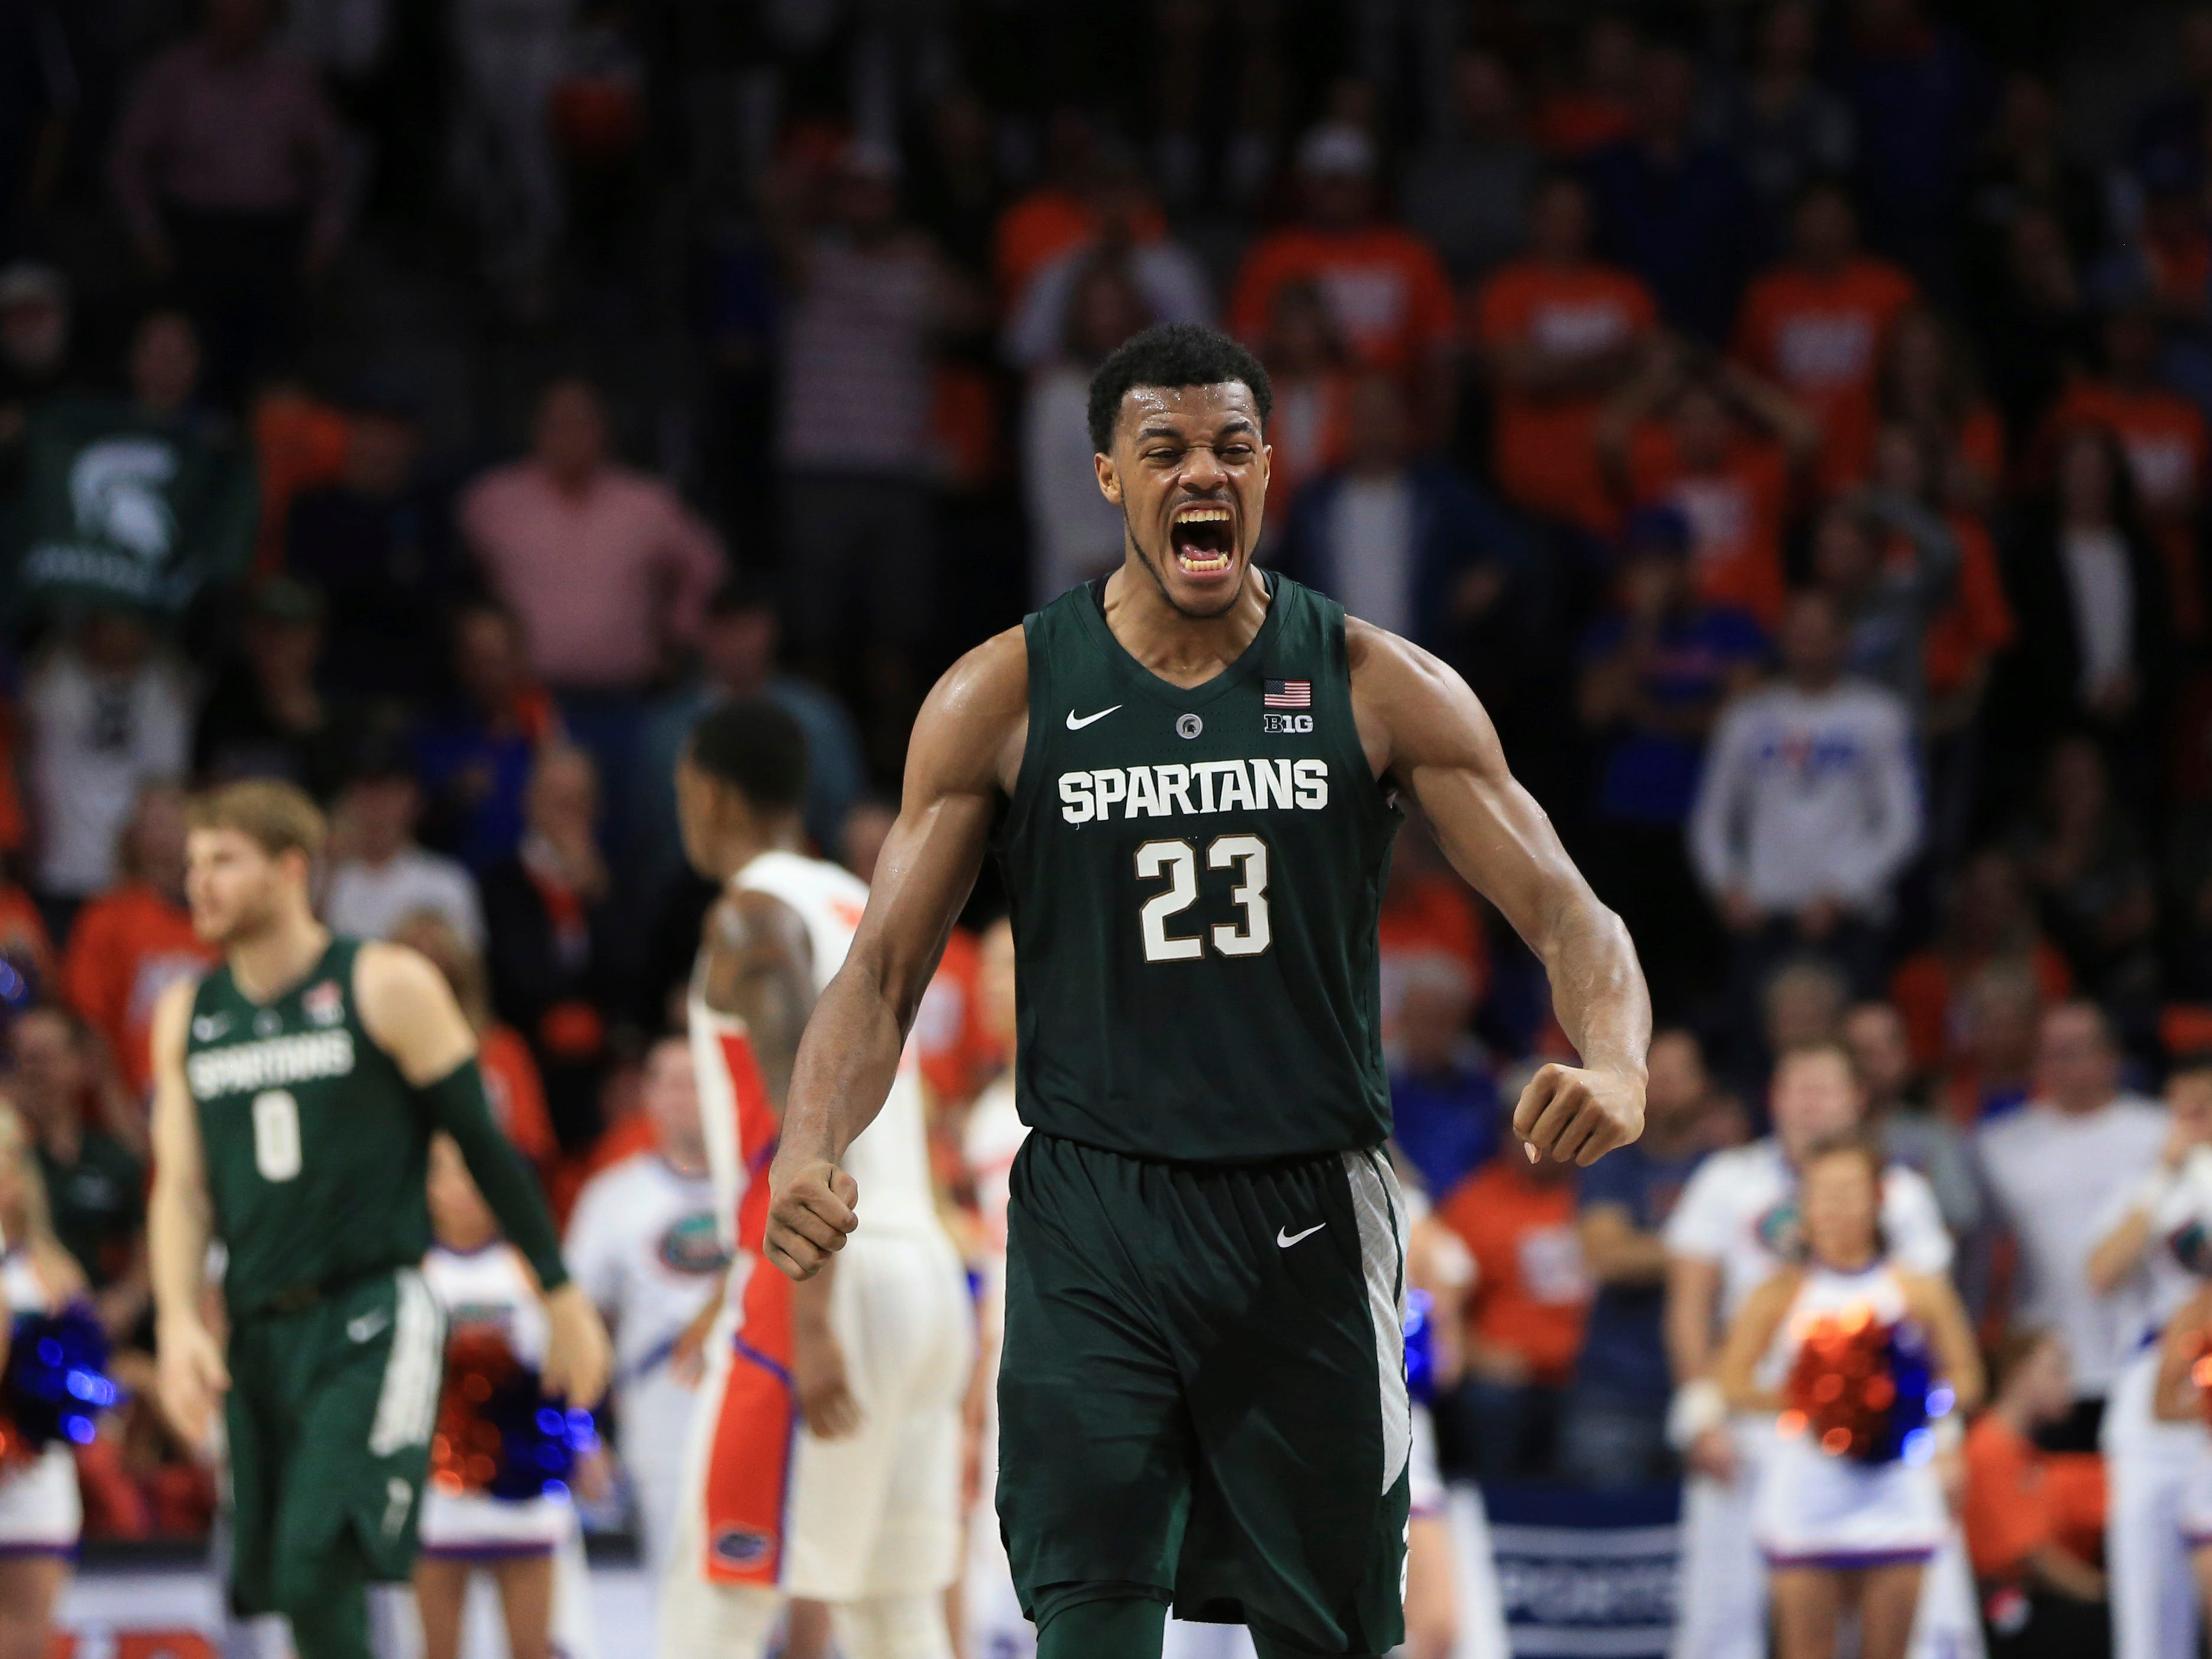 Michigan State forward Xavier Tillman (23) celebrates after a dunk by forward Kyle Ahrens  late in the second half of  a 63-59 Spartans victory over the Florida Gators Saturday, Dec. 8, 2018, in Gainesville, Fla.